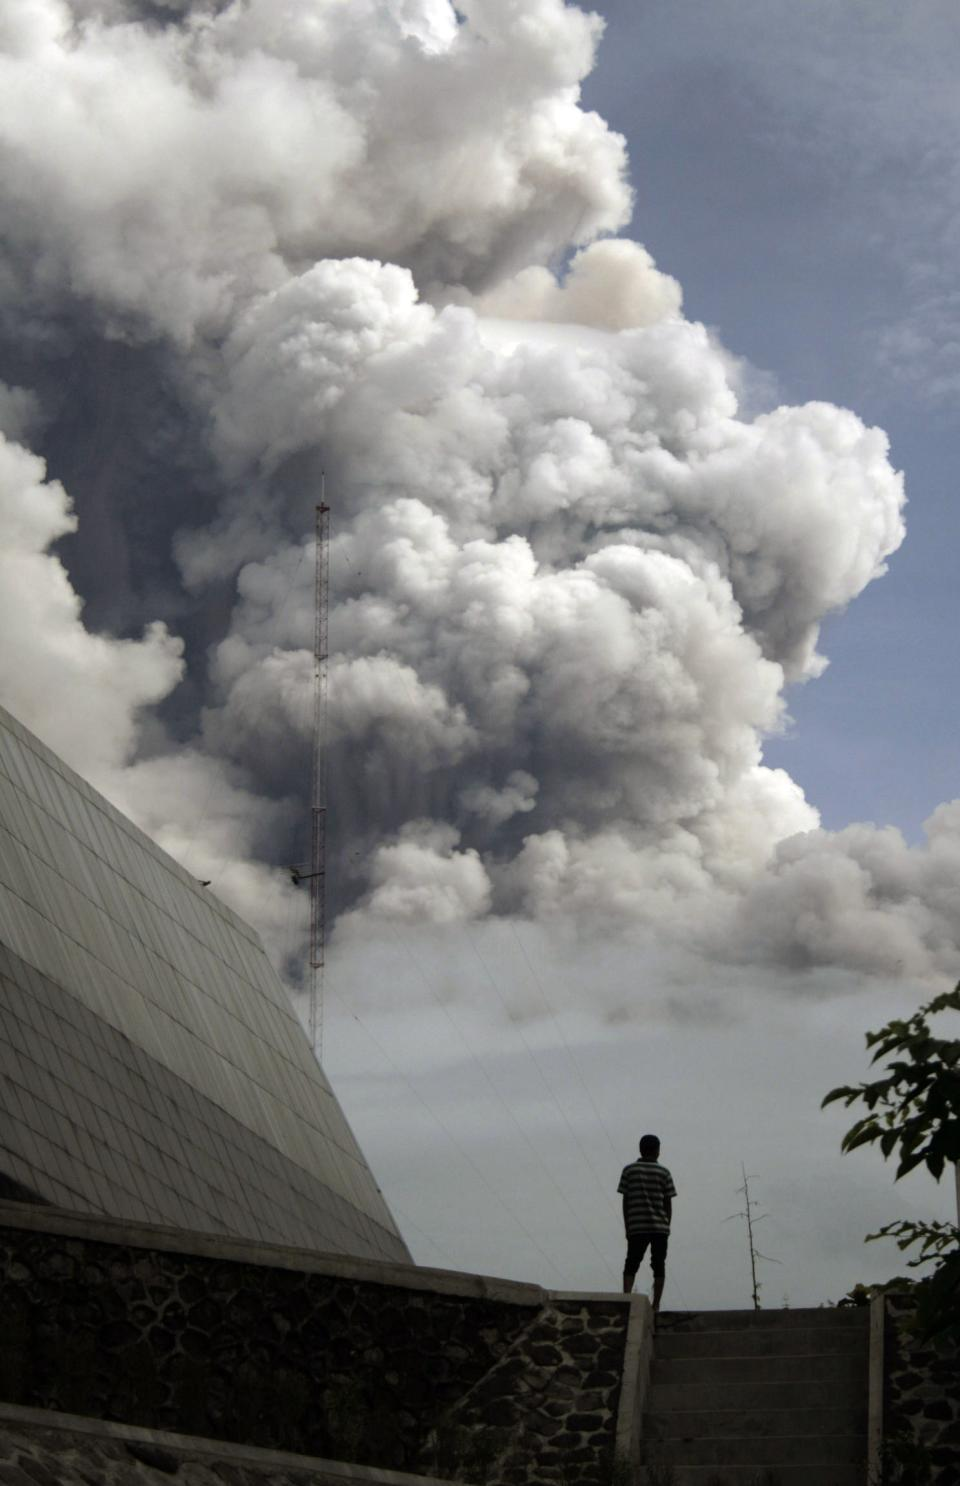 An Indonesian man watches as Mount Merapi erupts in Hargobinangun, Yogyakarta, Indonesia, Wednesday, Nov. 3, 2010. Indonesia's most dangerous volcano is once again sending searing gas clouds and burning rocks down its scorched flanks. (AP Photo/Slamet Riyadi)